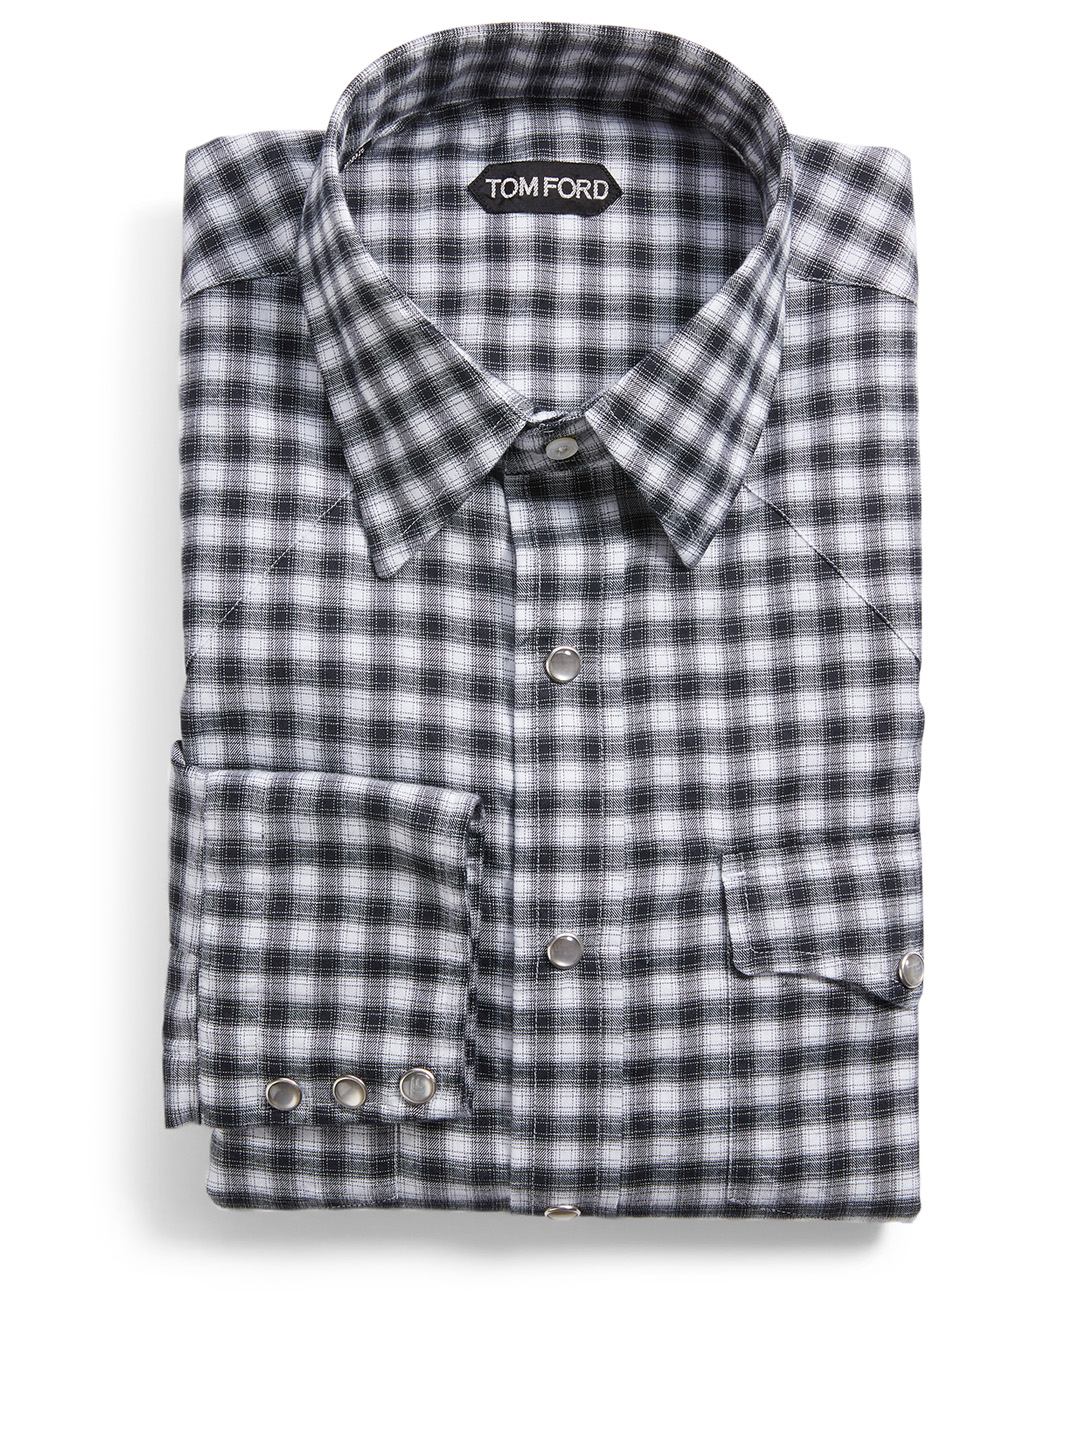 TOM FORD Cotton Western Shirt In Plaid Print Men's Black